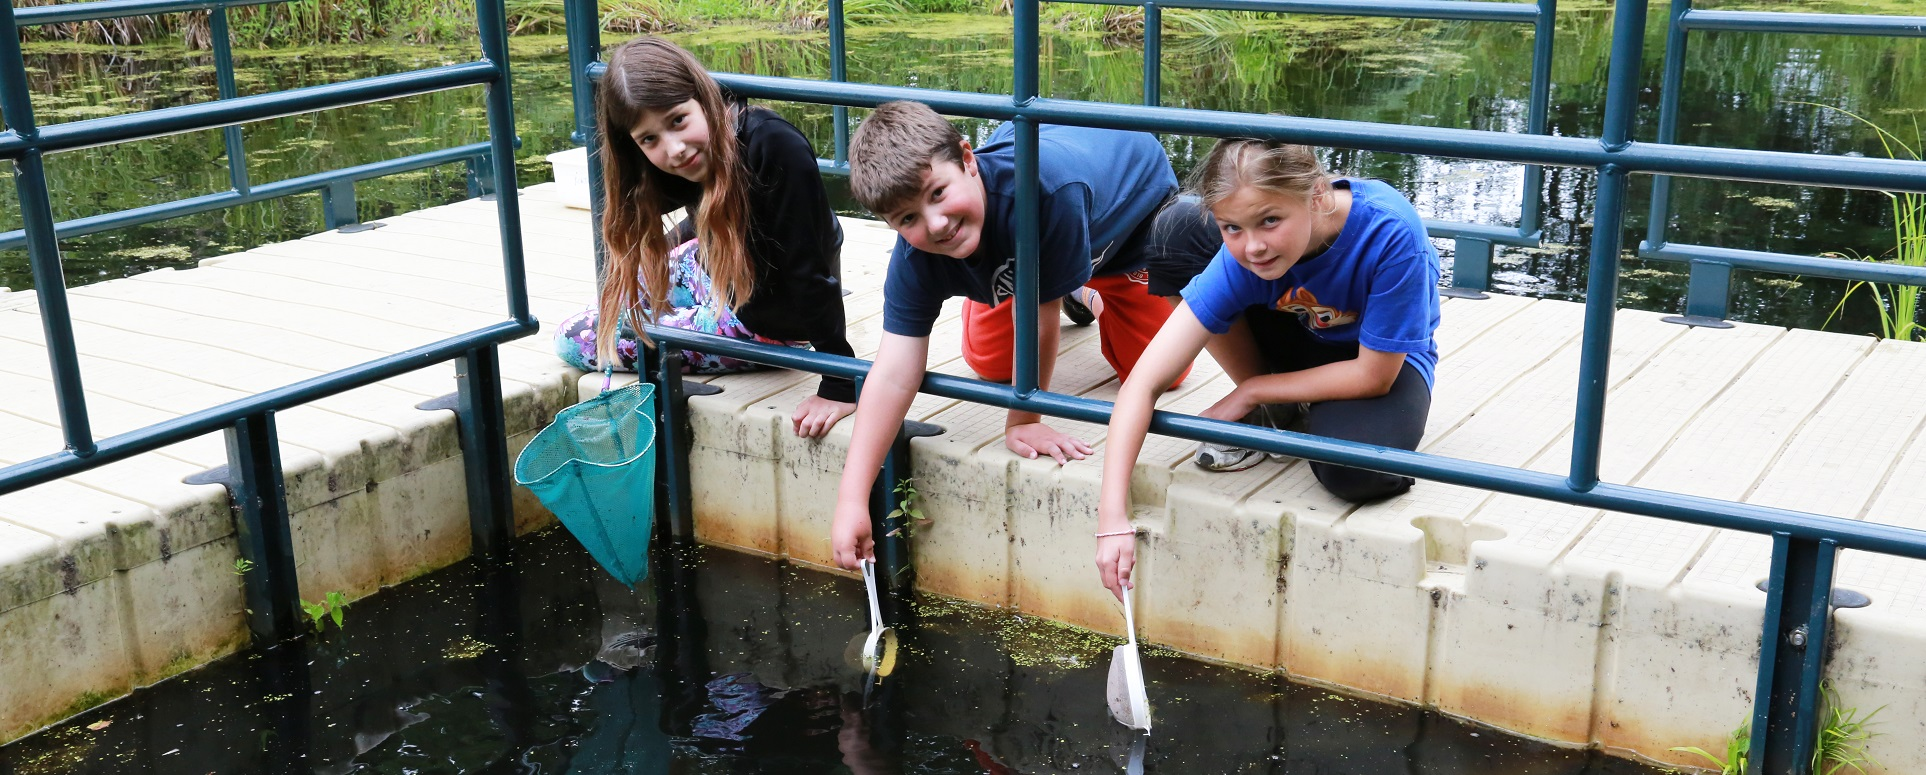 kids with dip nets search for aquatic creatures at Kortright Centre wetland area